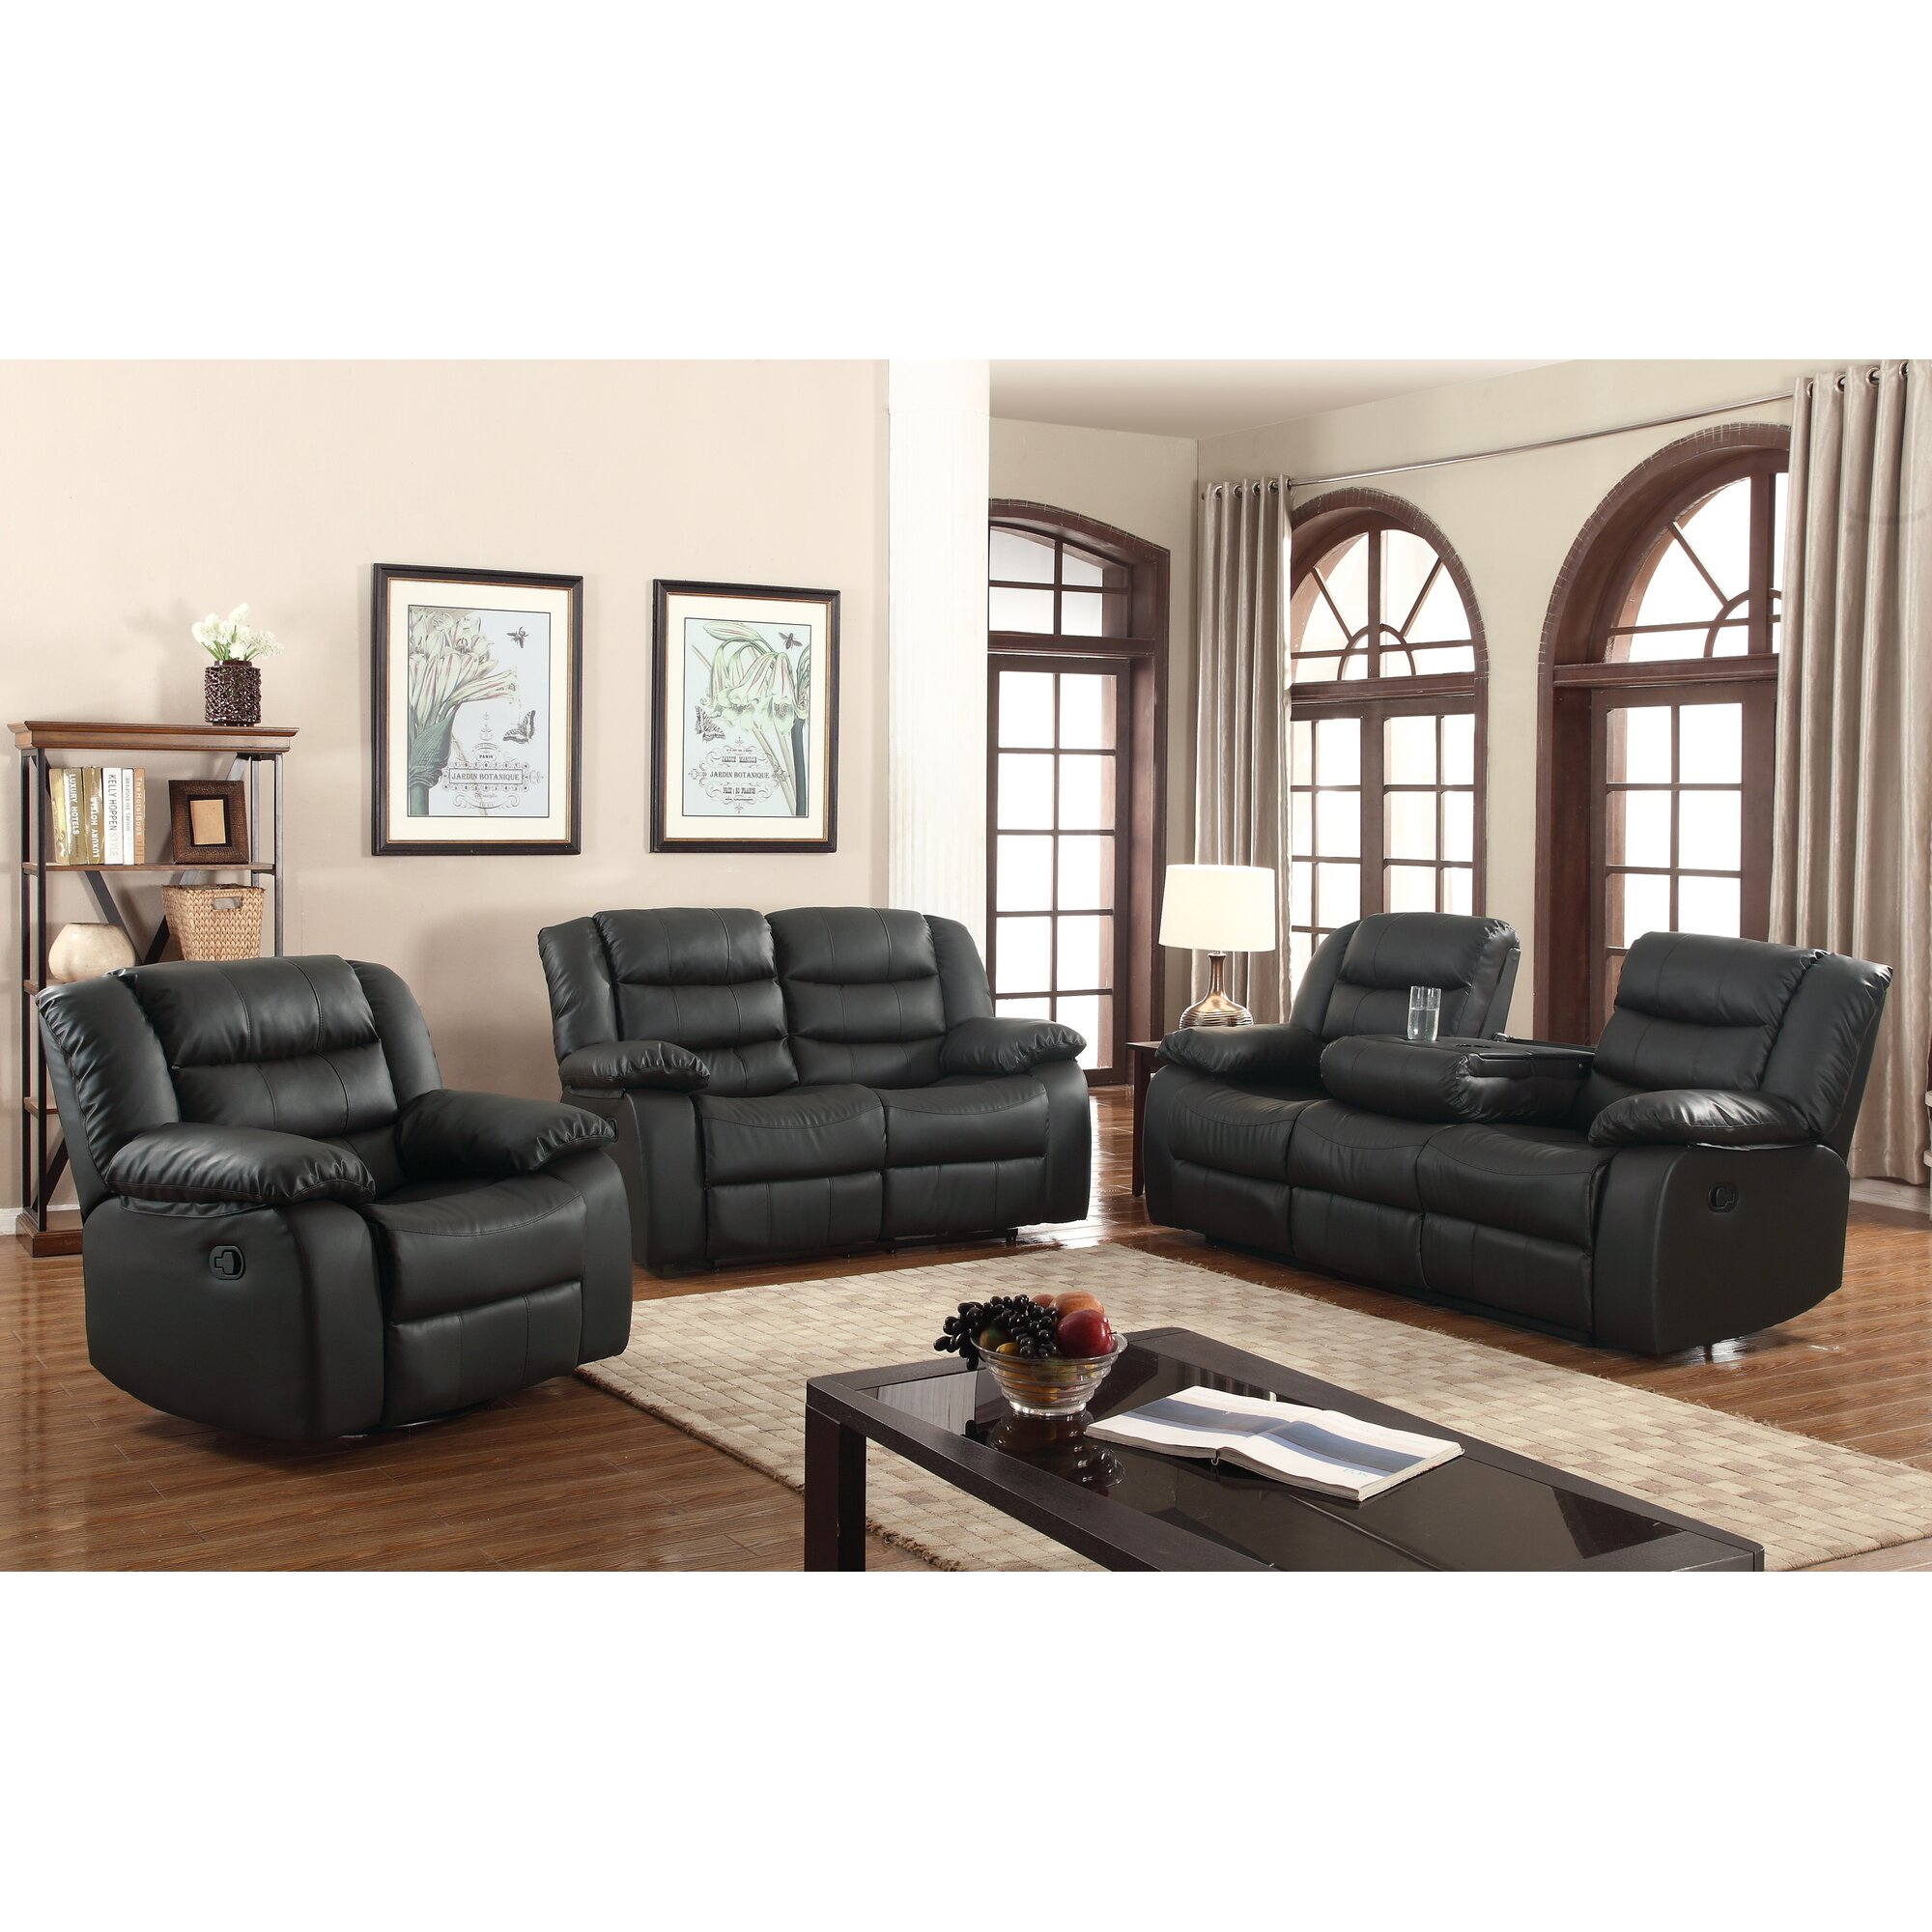 Living Room Sets: Living In Style Casta 3 Piece Living Room Set & Reviews